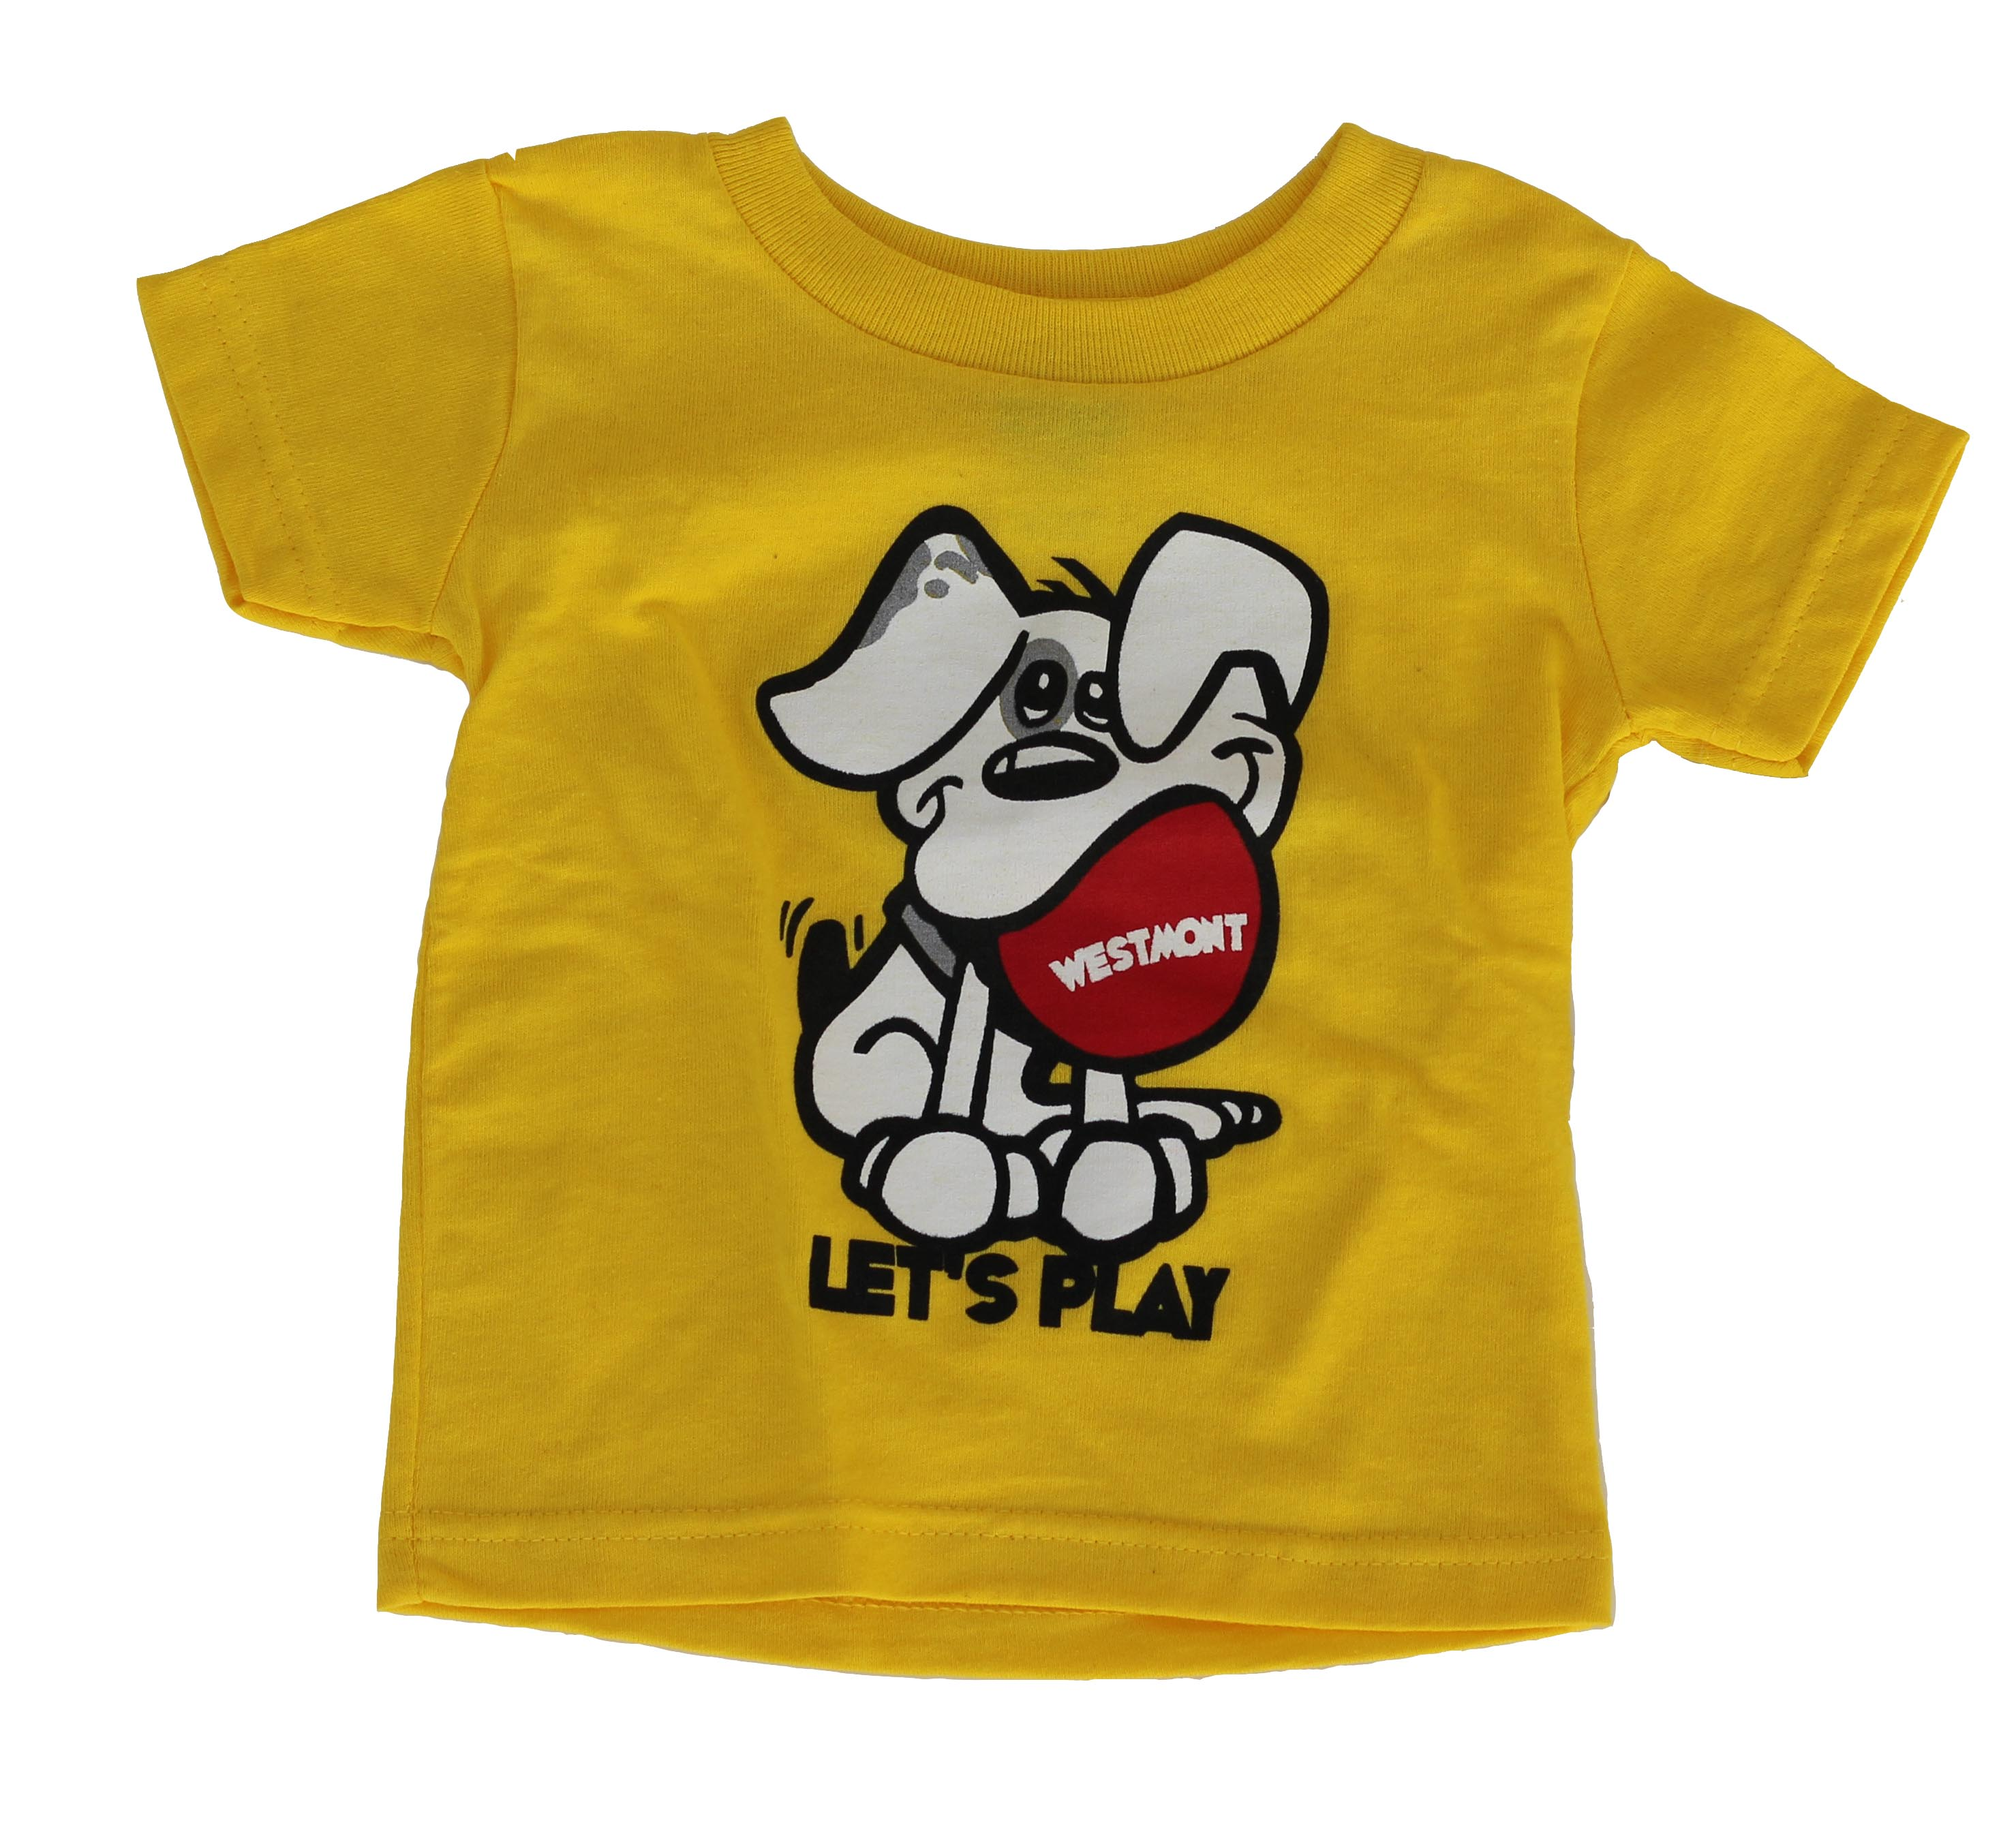 Image for the CI Sport Westmont Dog Toddler Tee  product